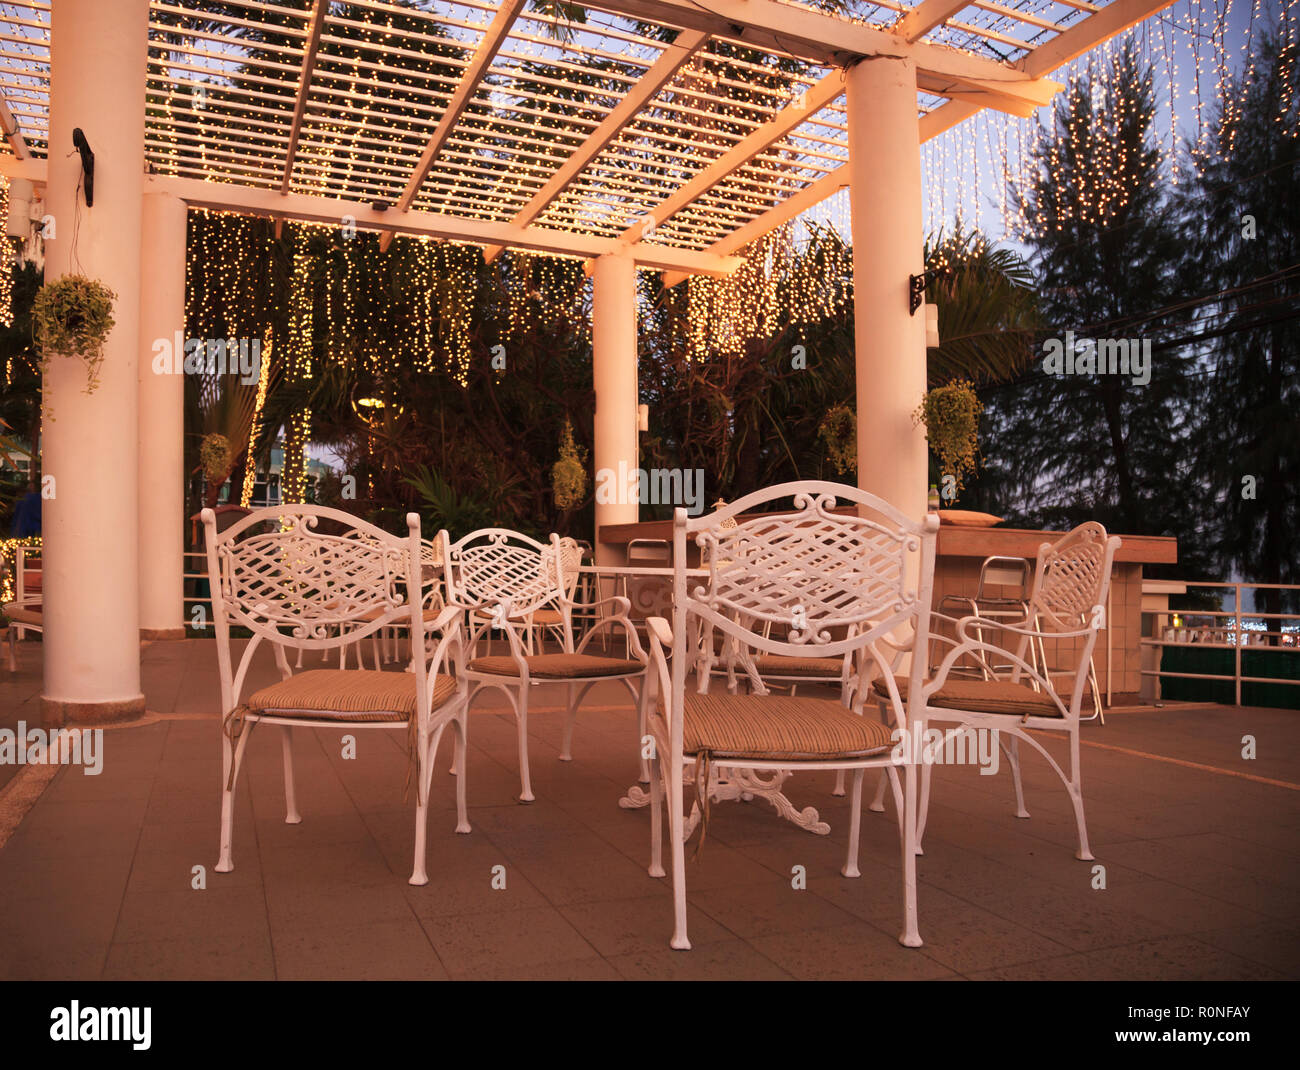 white outdoor exterior park garden party table and chairs with warm light illumination decoration ceiling, architecture house home furniture design co - Stock Image